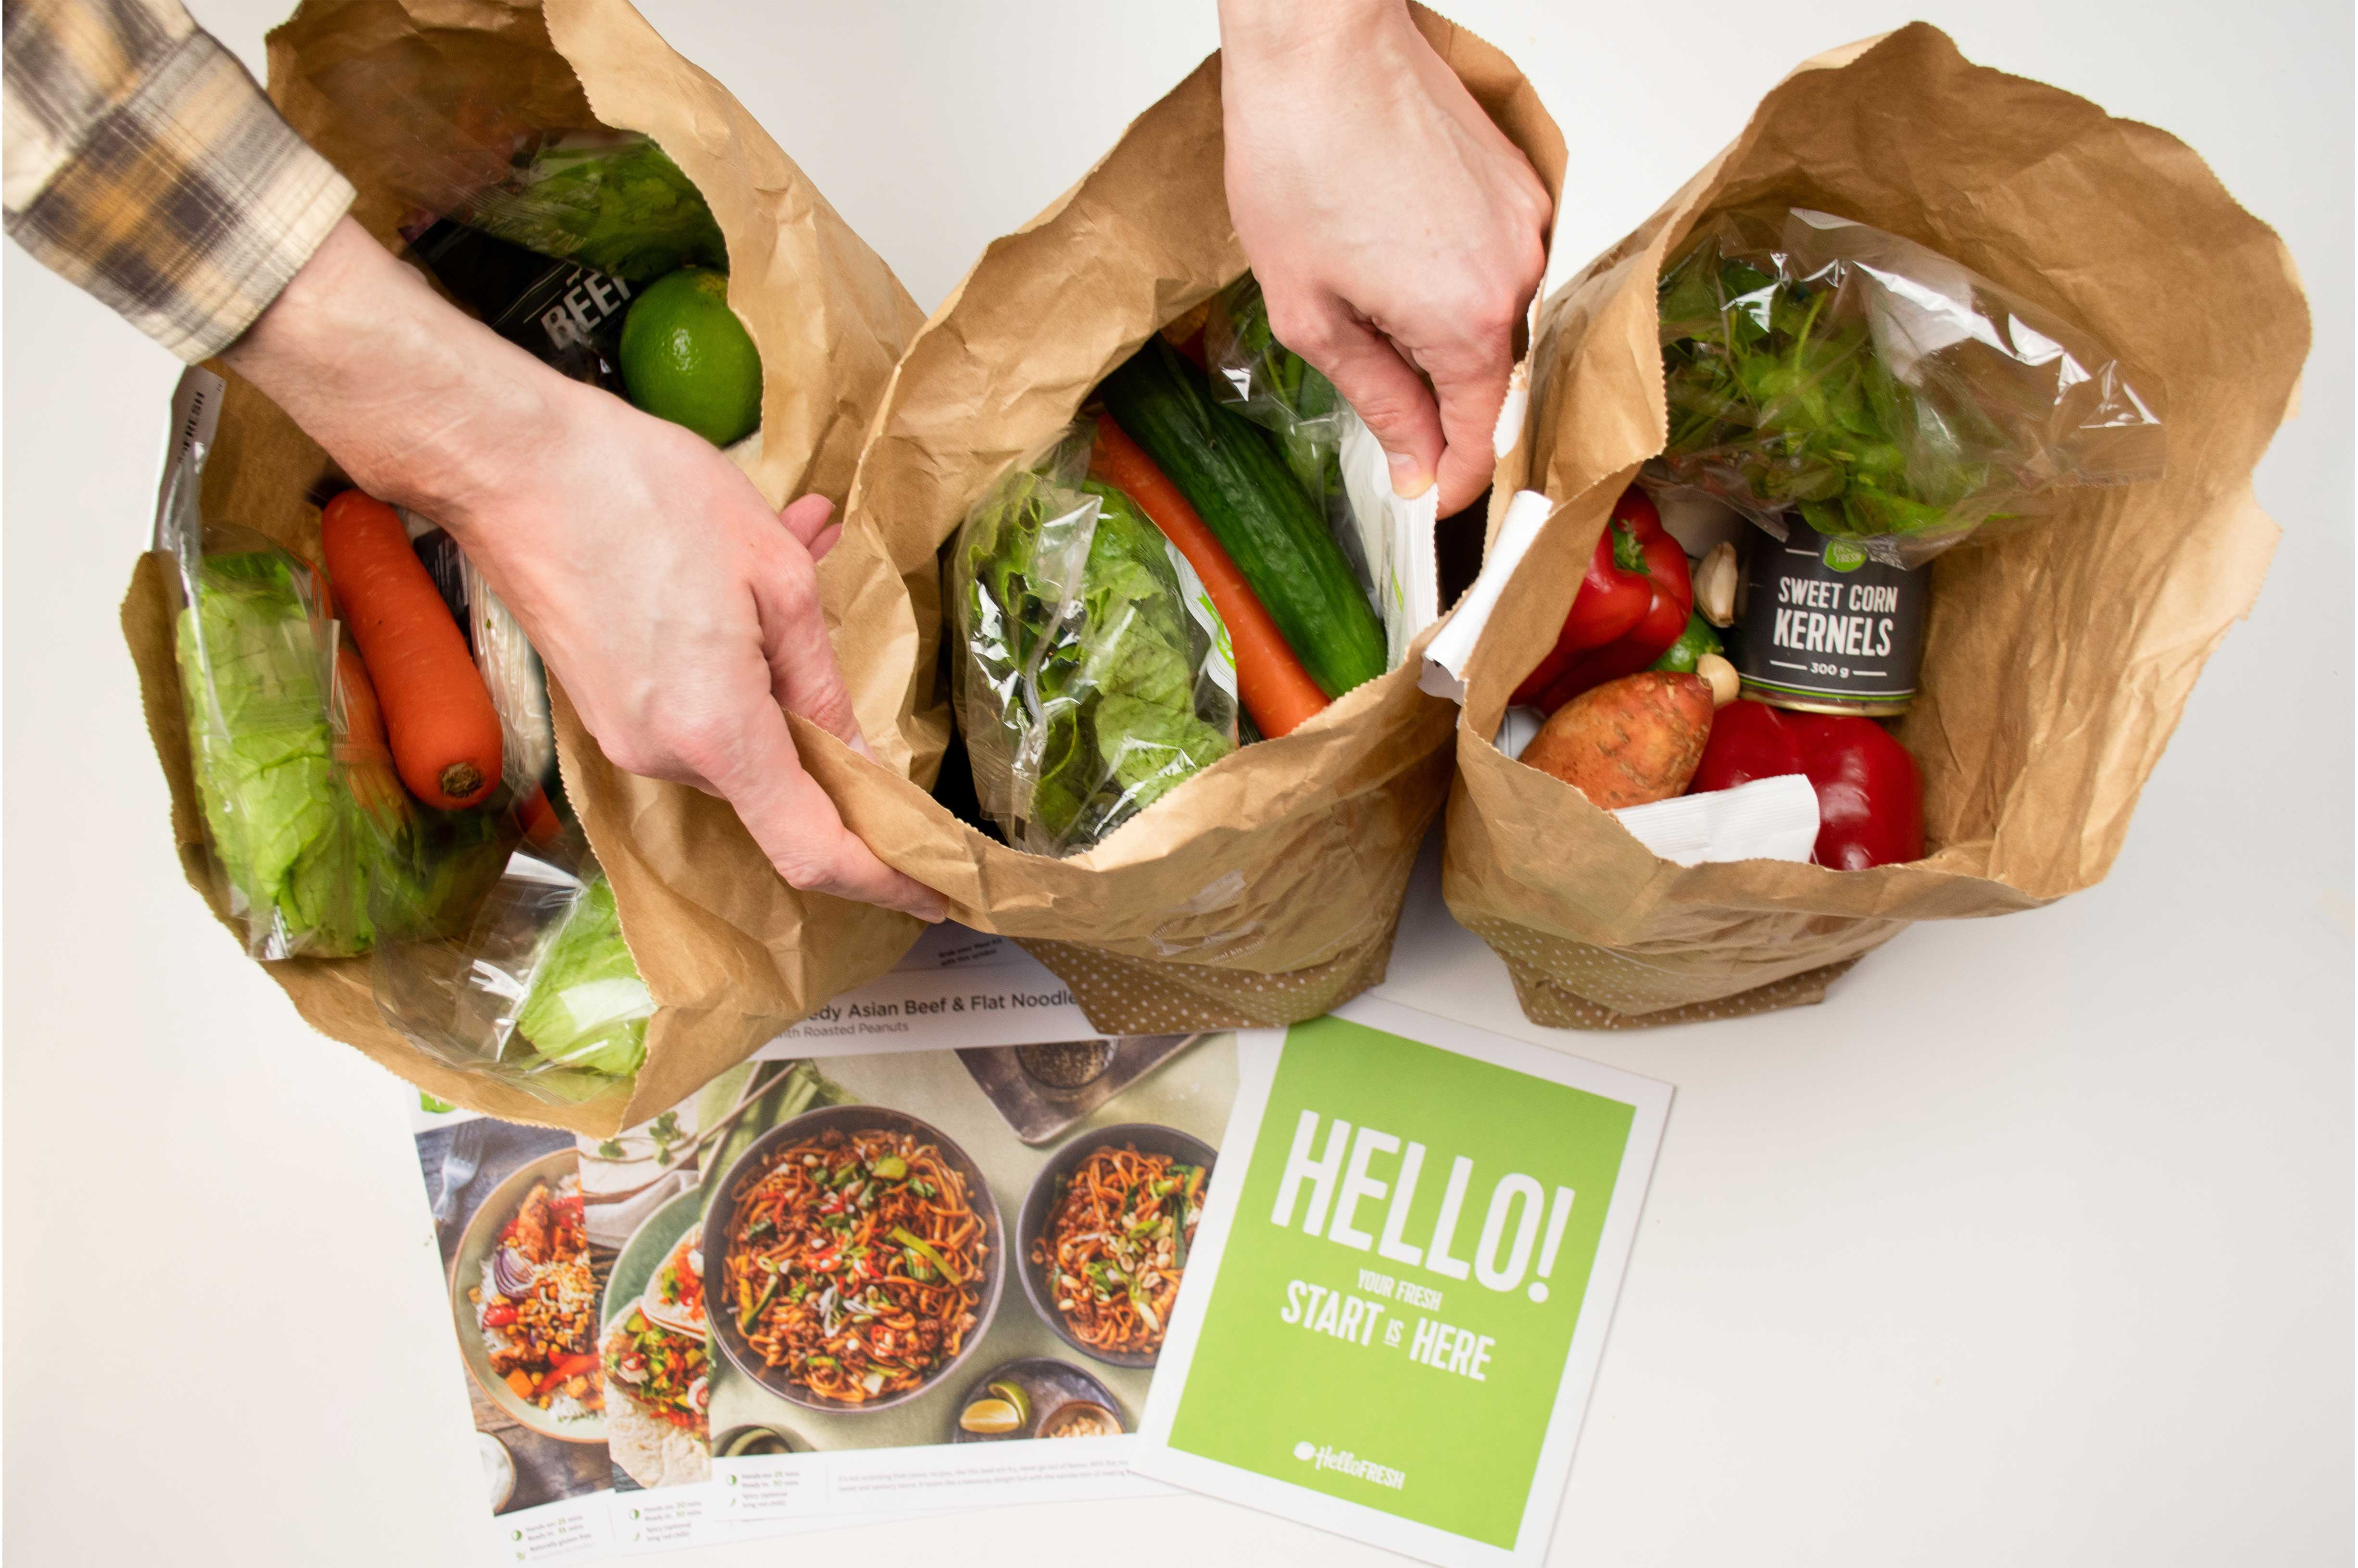 Meal Kits are impacting Food Industry and Consumers around the world